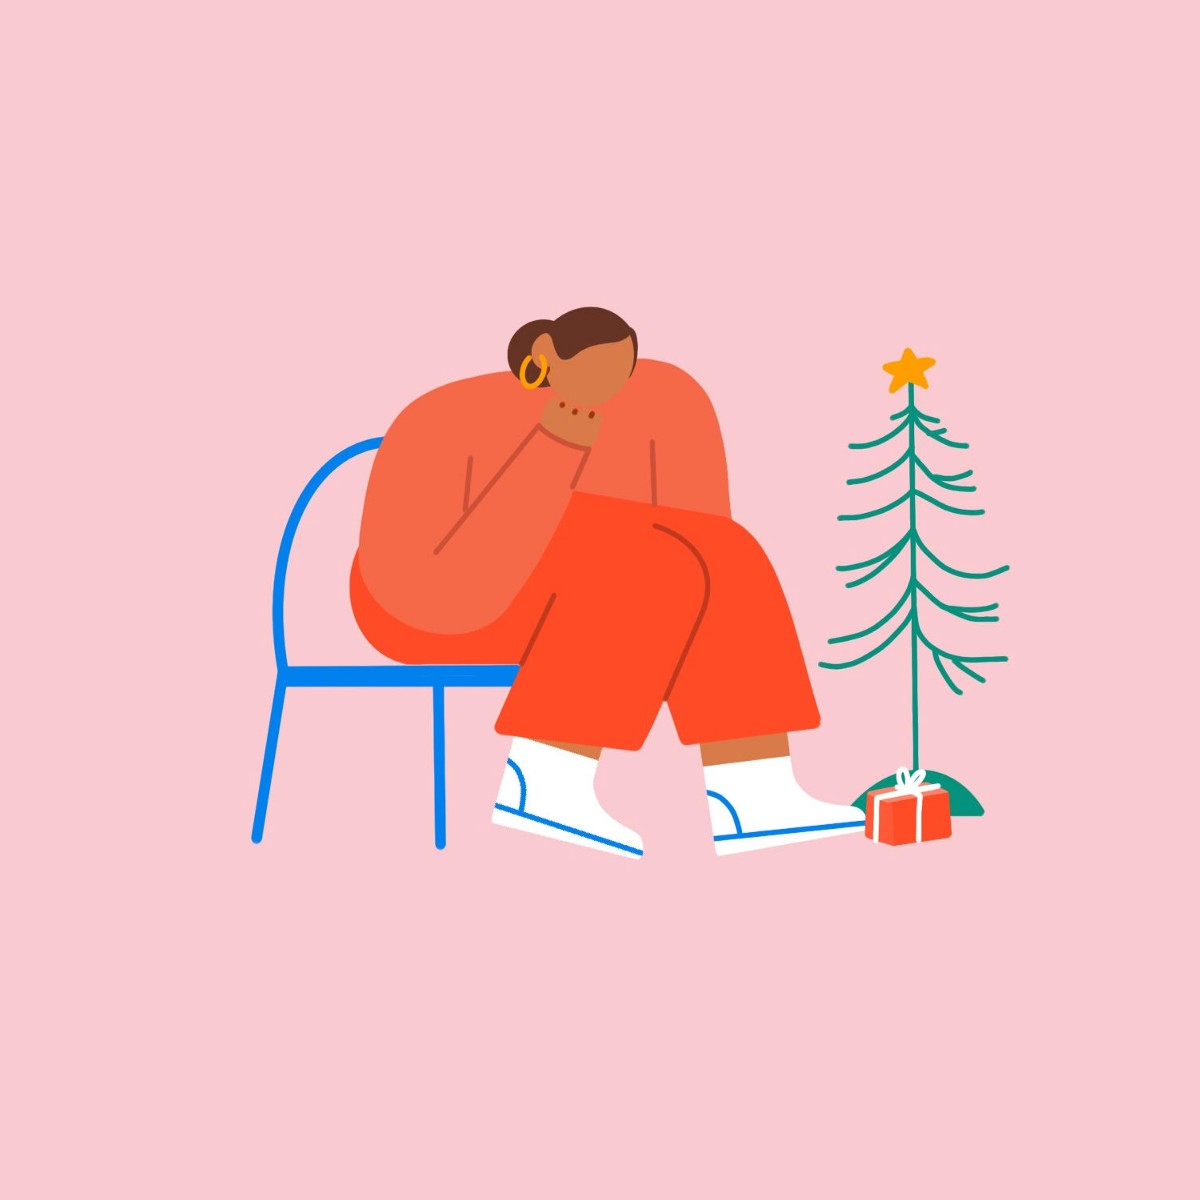 How to Cope With Holiday Loneliness